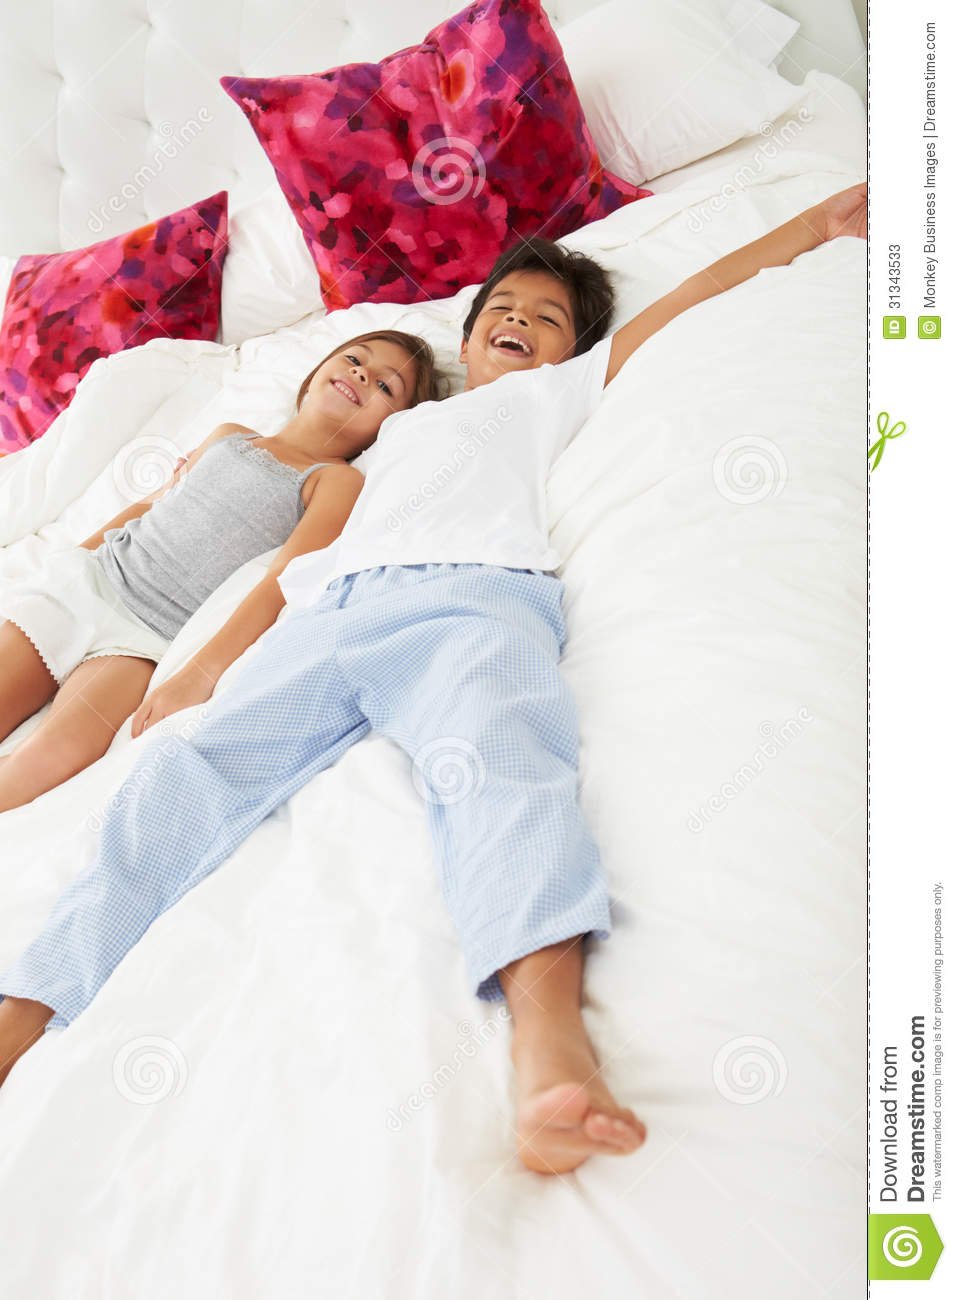 Children lying on bed in pajamas together smiling to camera